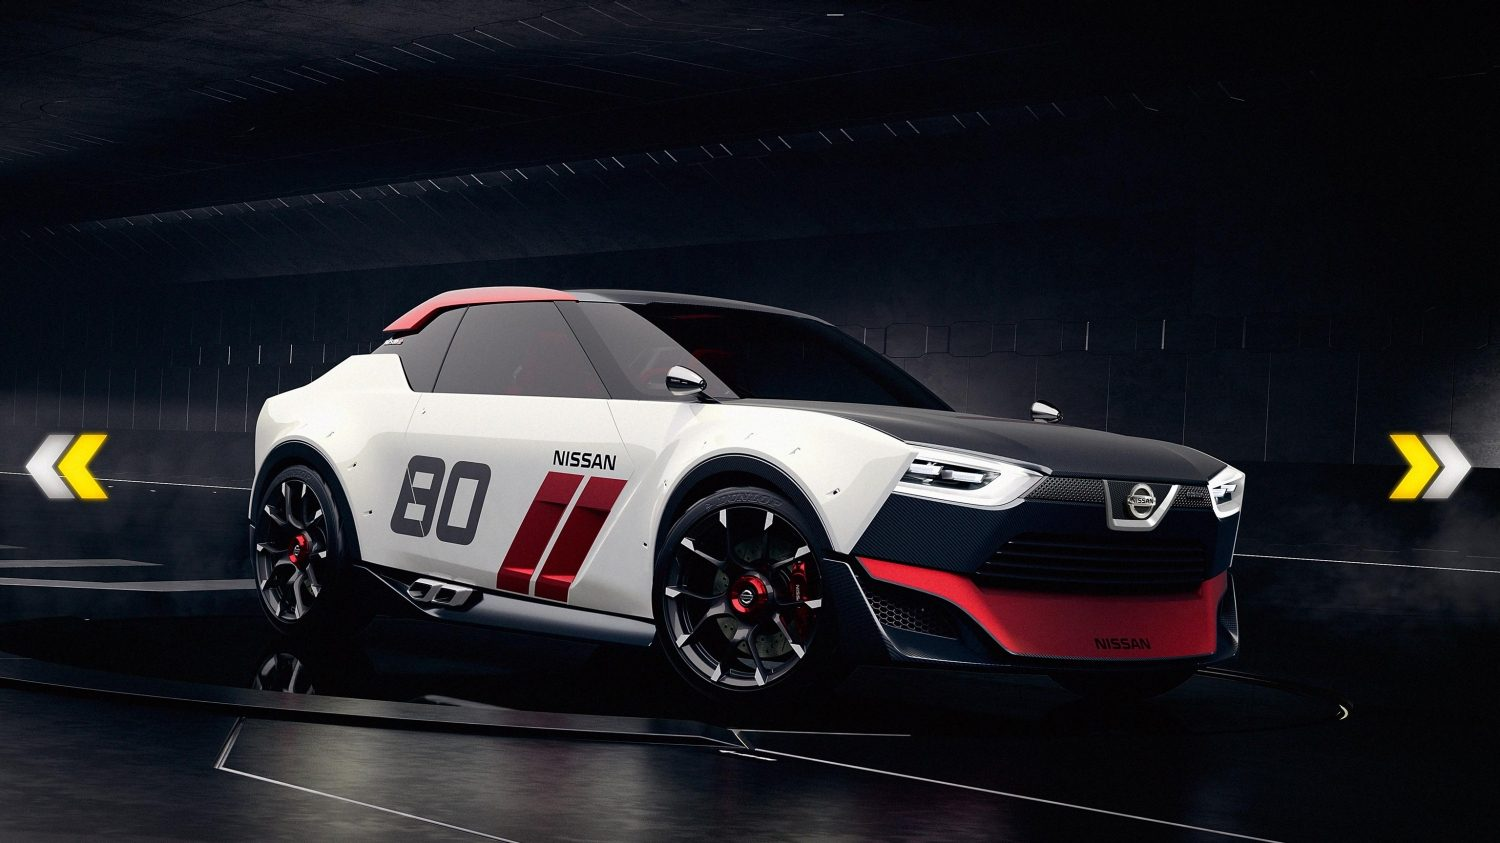 Nissan IDX NISMO Concept. Gallery low side.